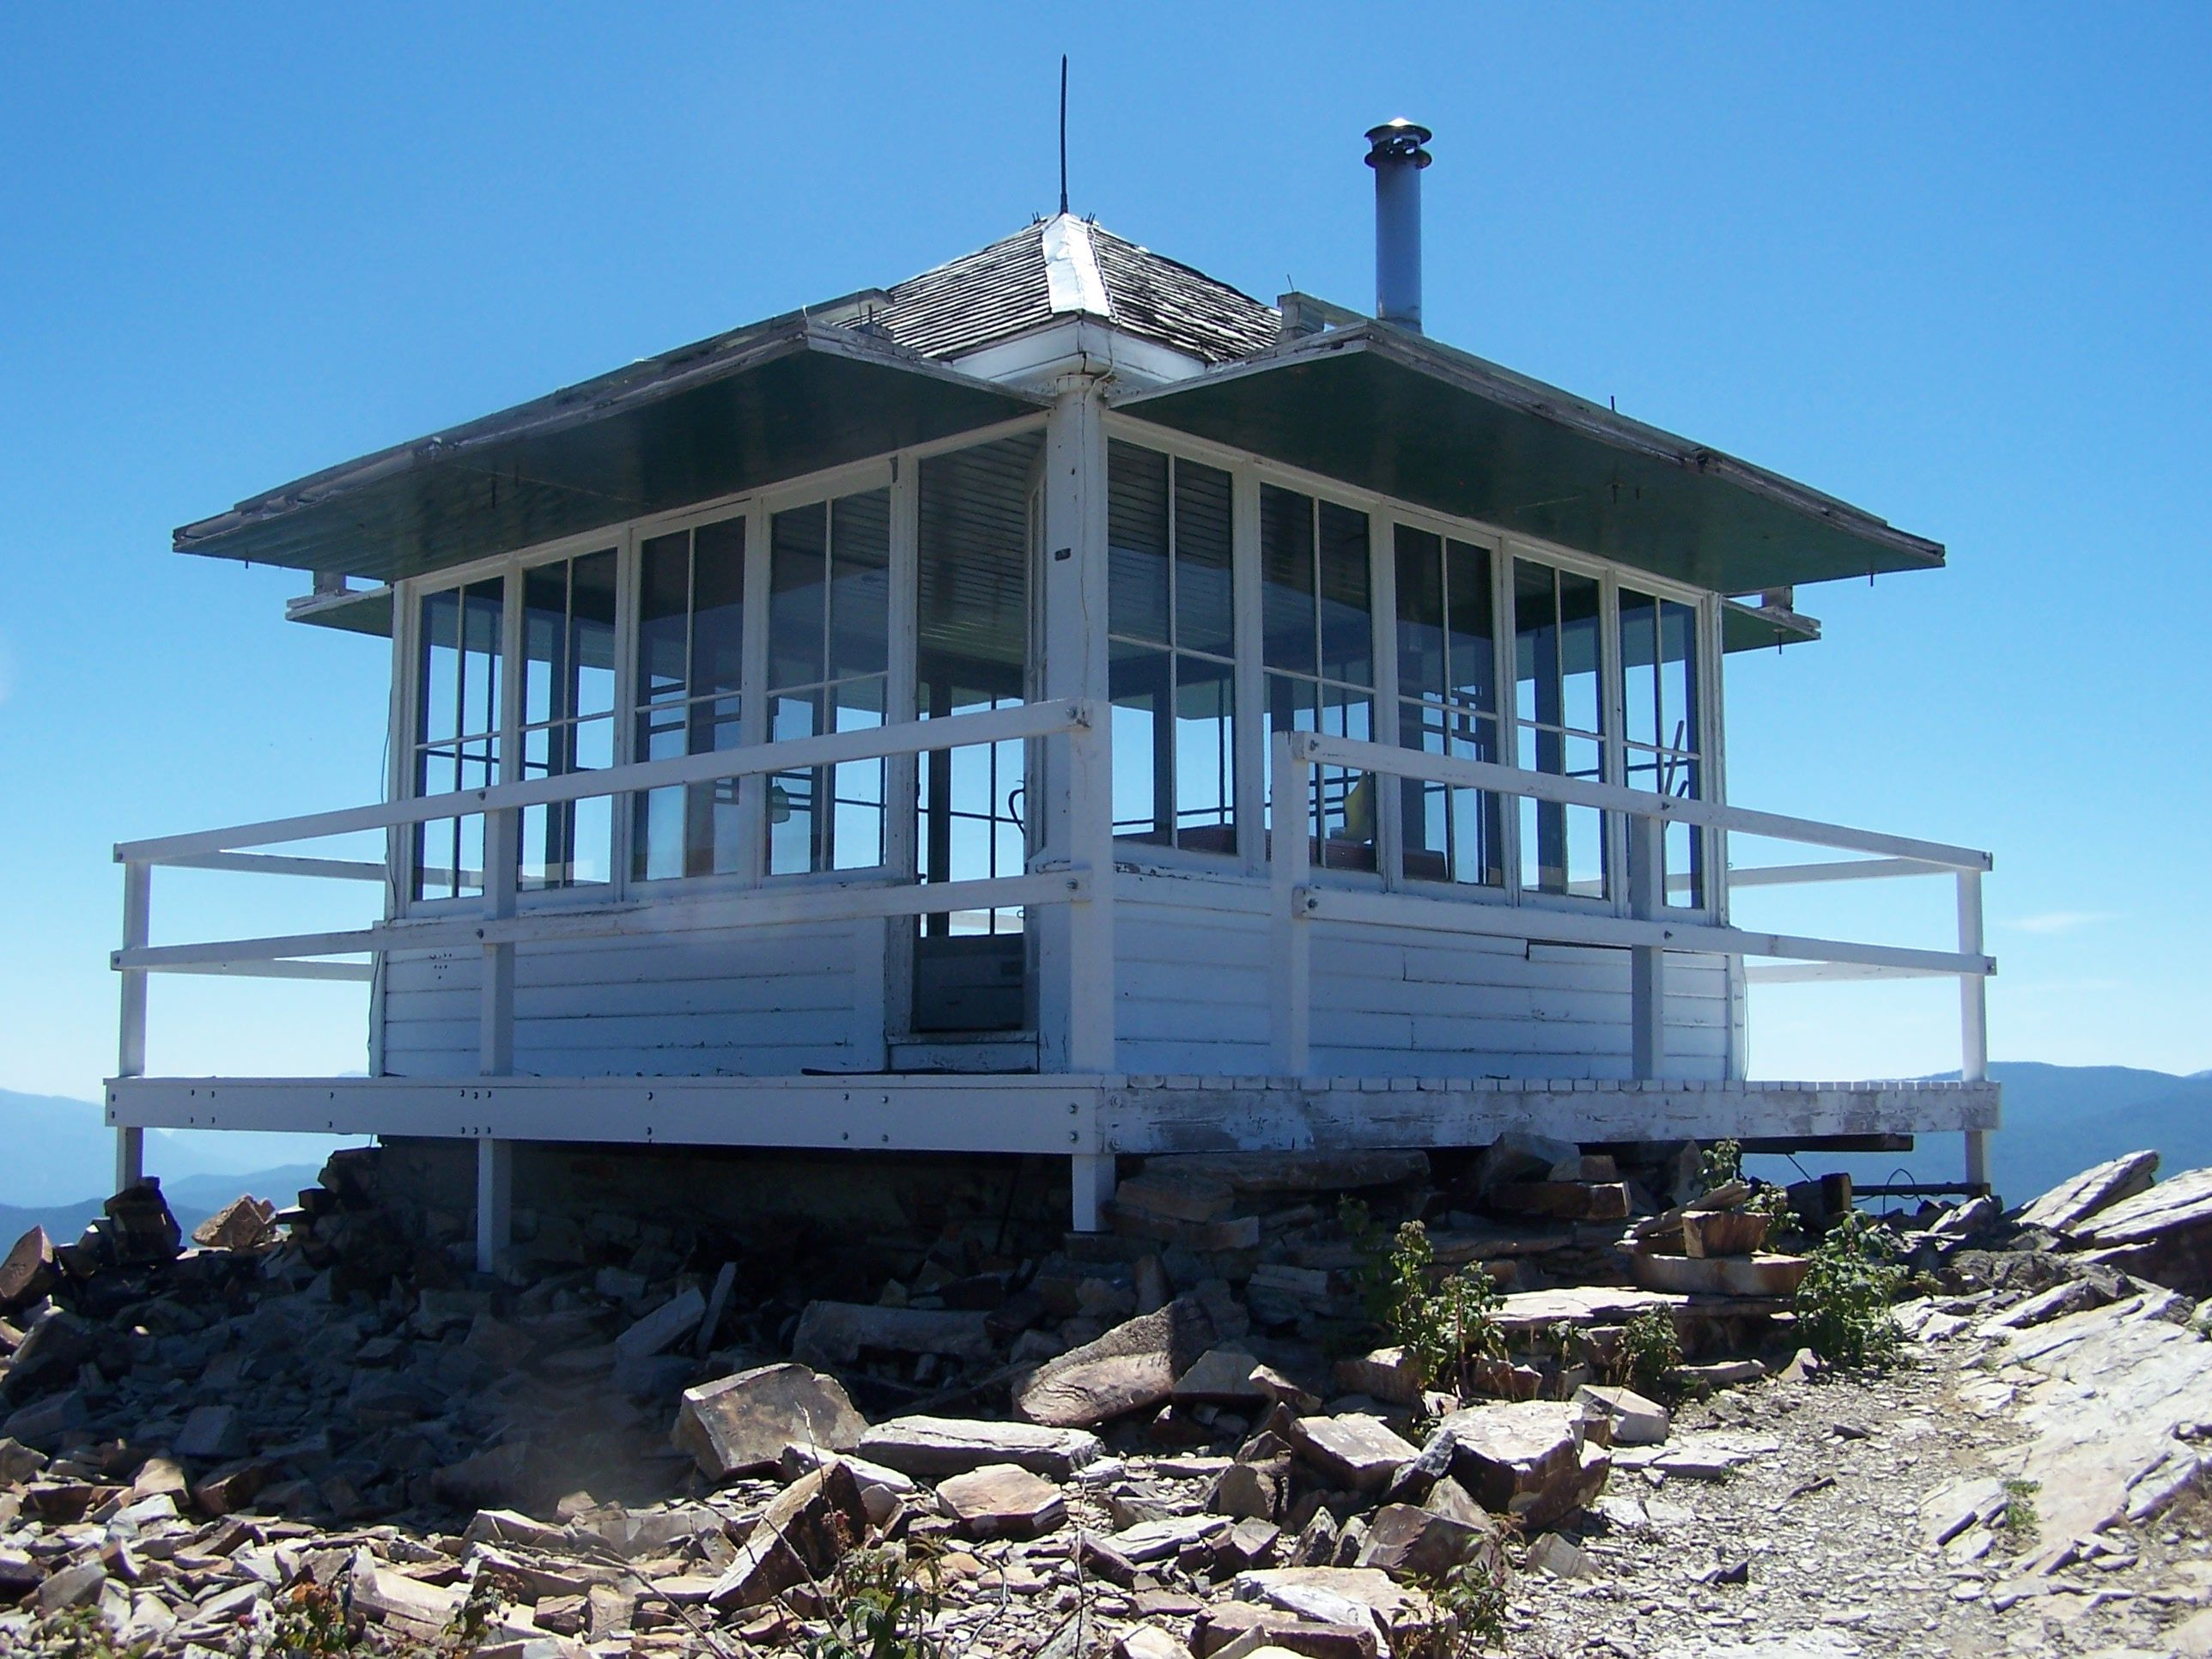 Exterior view of the lookout